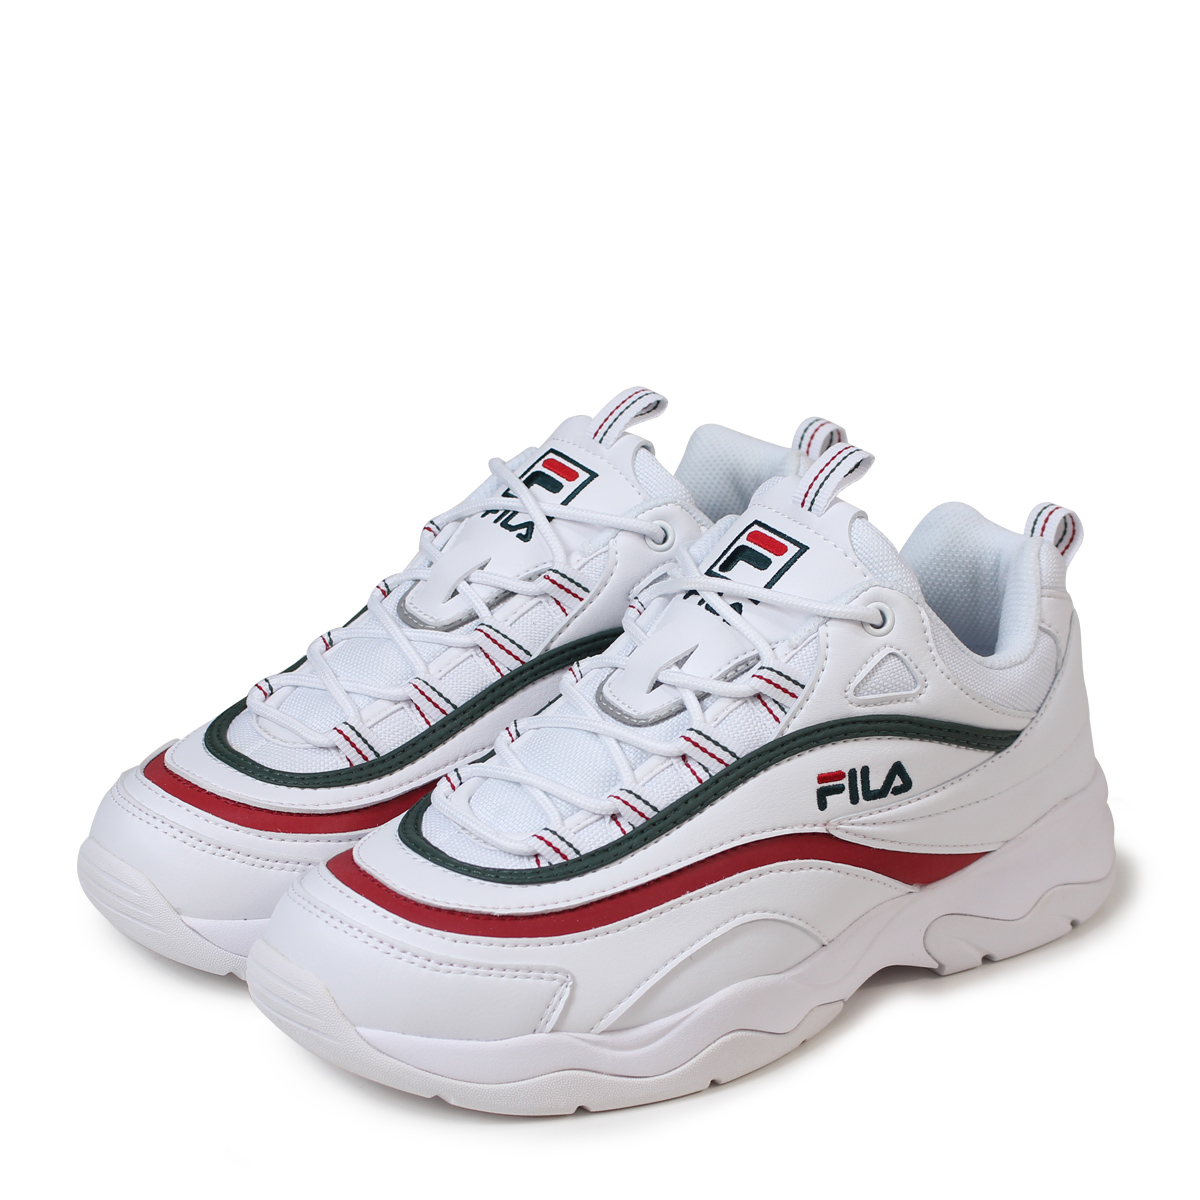 12eb7687248c FILA FOLDER FILARAY SMU Fila Fila lei sneakers Lady s men folder  collaboration white FLFL8A1U10 FS1SIA1166X WGN  load planned Shinnyu load  in reservation ...